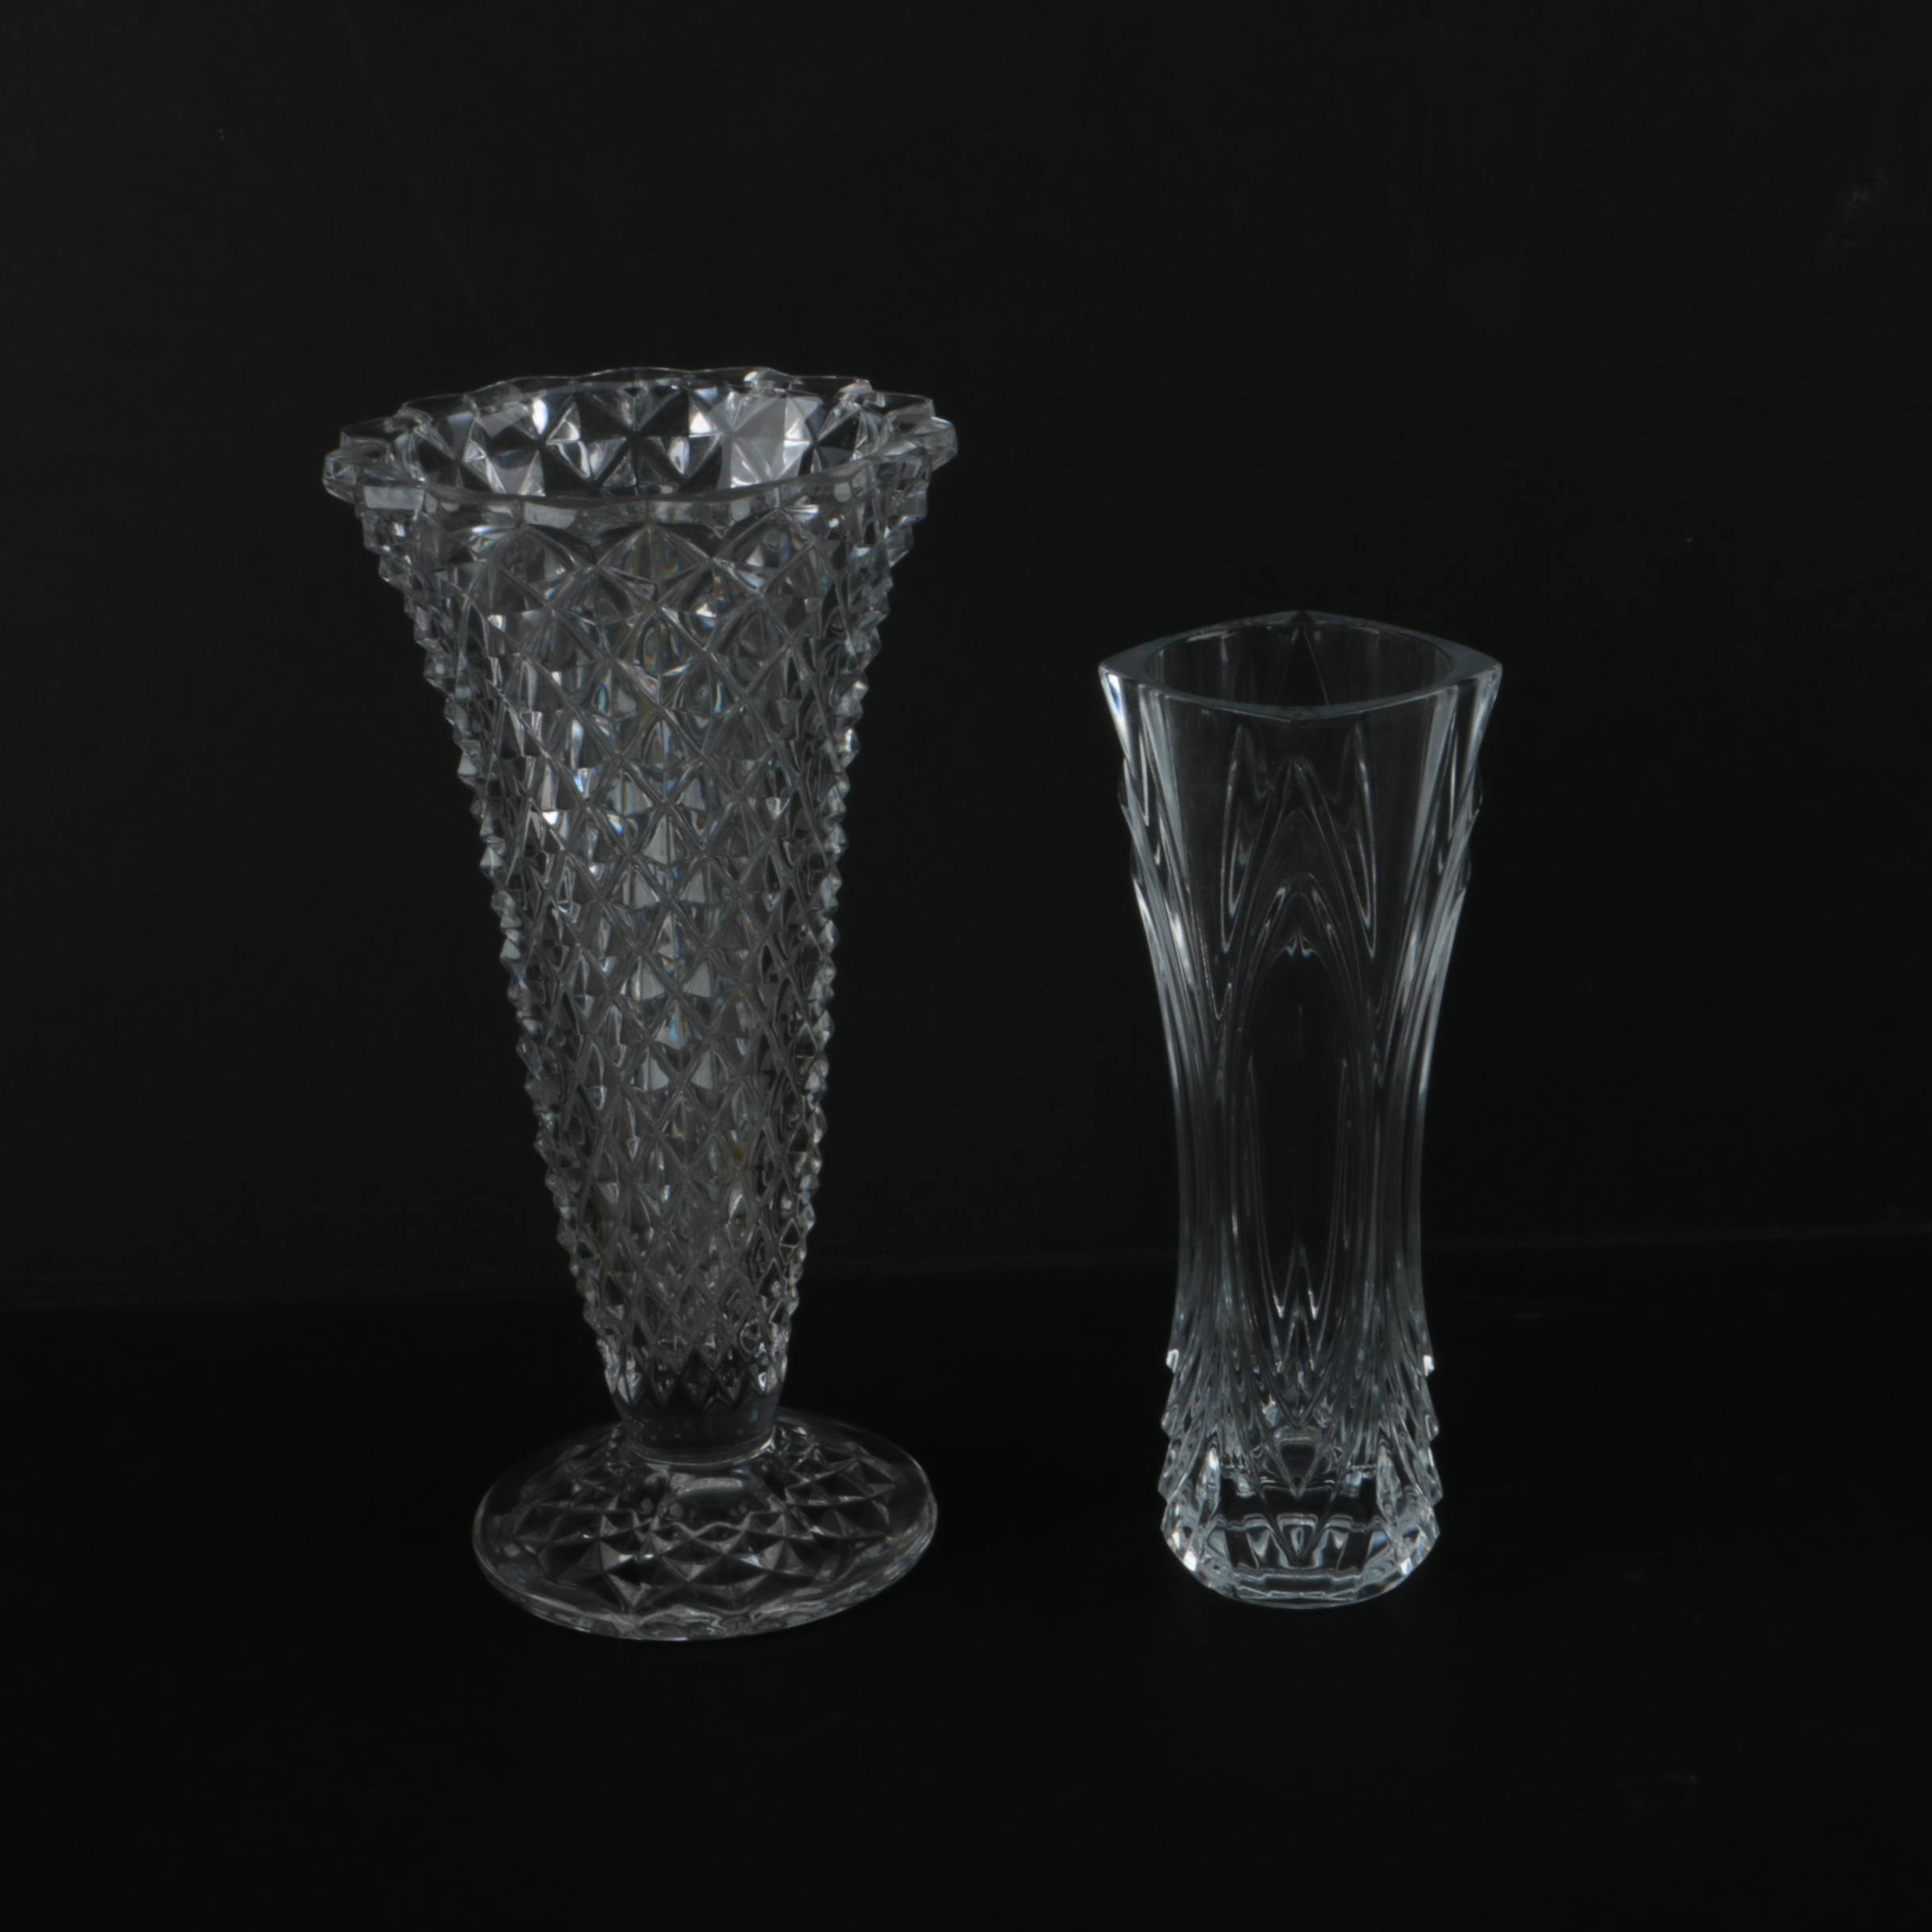 Crystal Vase and Glass Vase